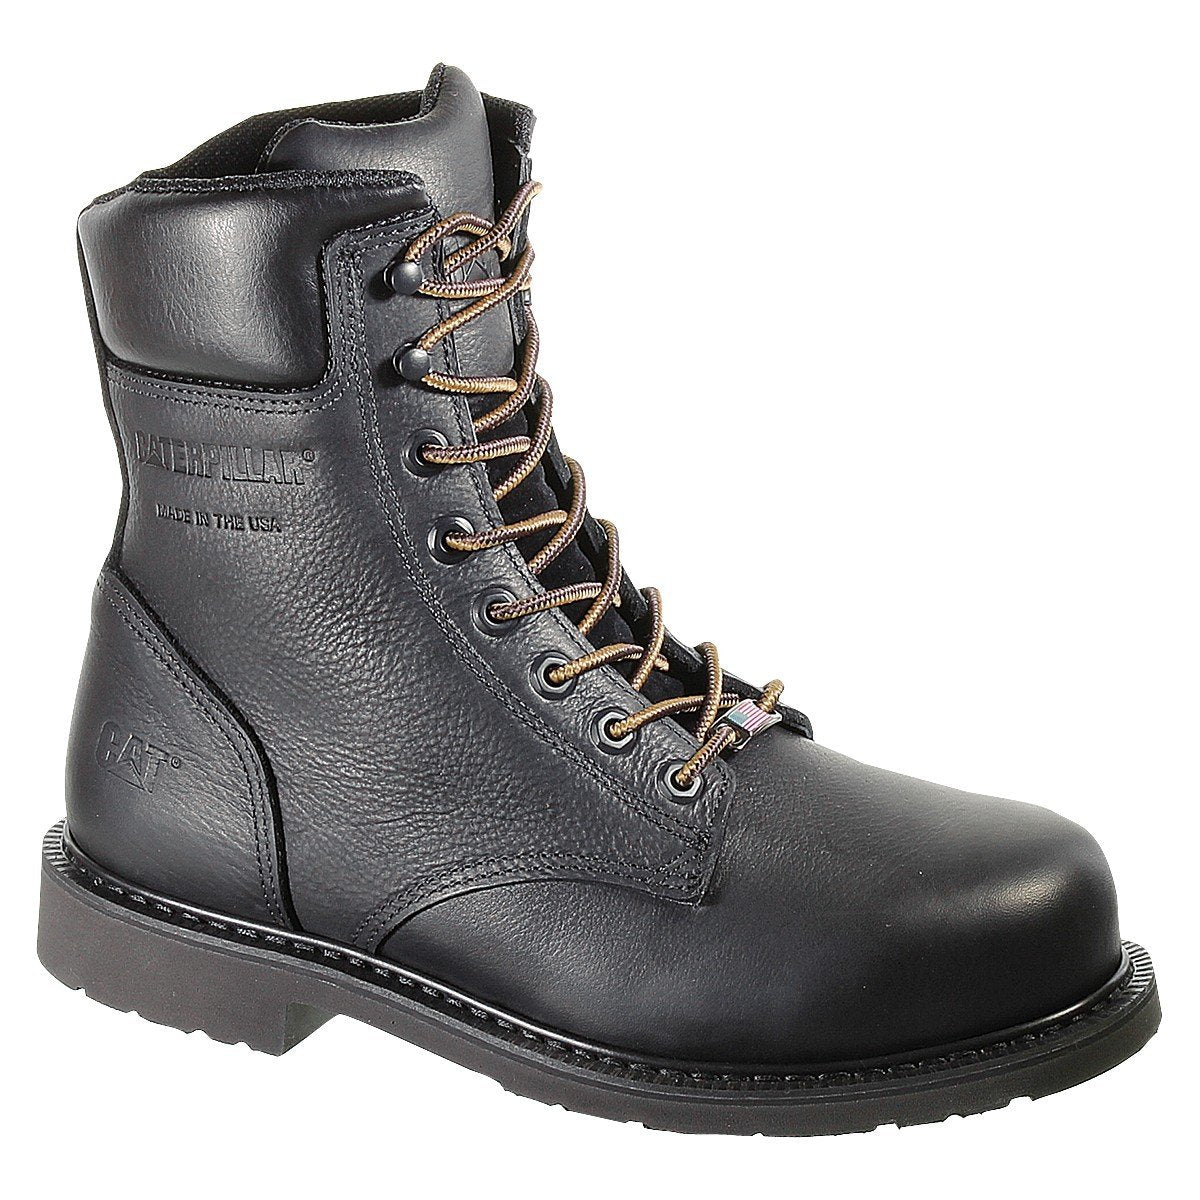 "Liberty 8"" Steel Toe Work Boot"